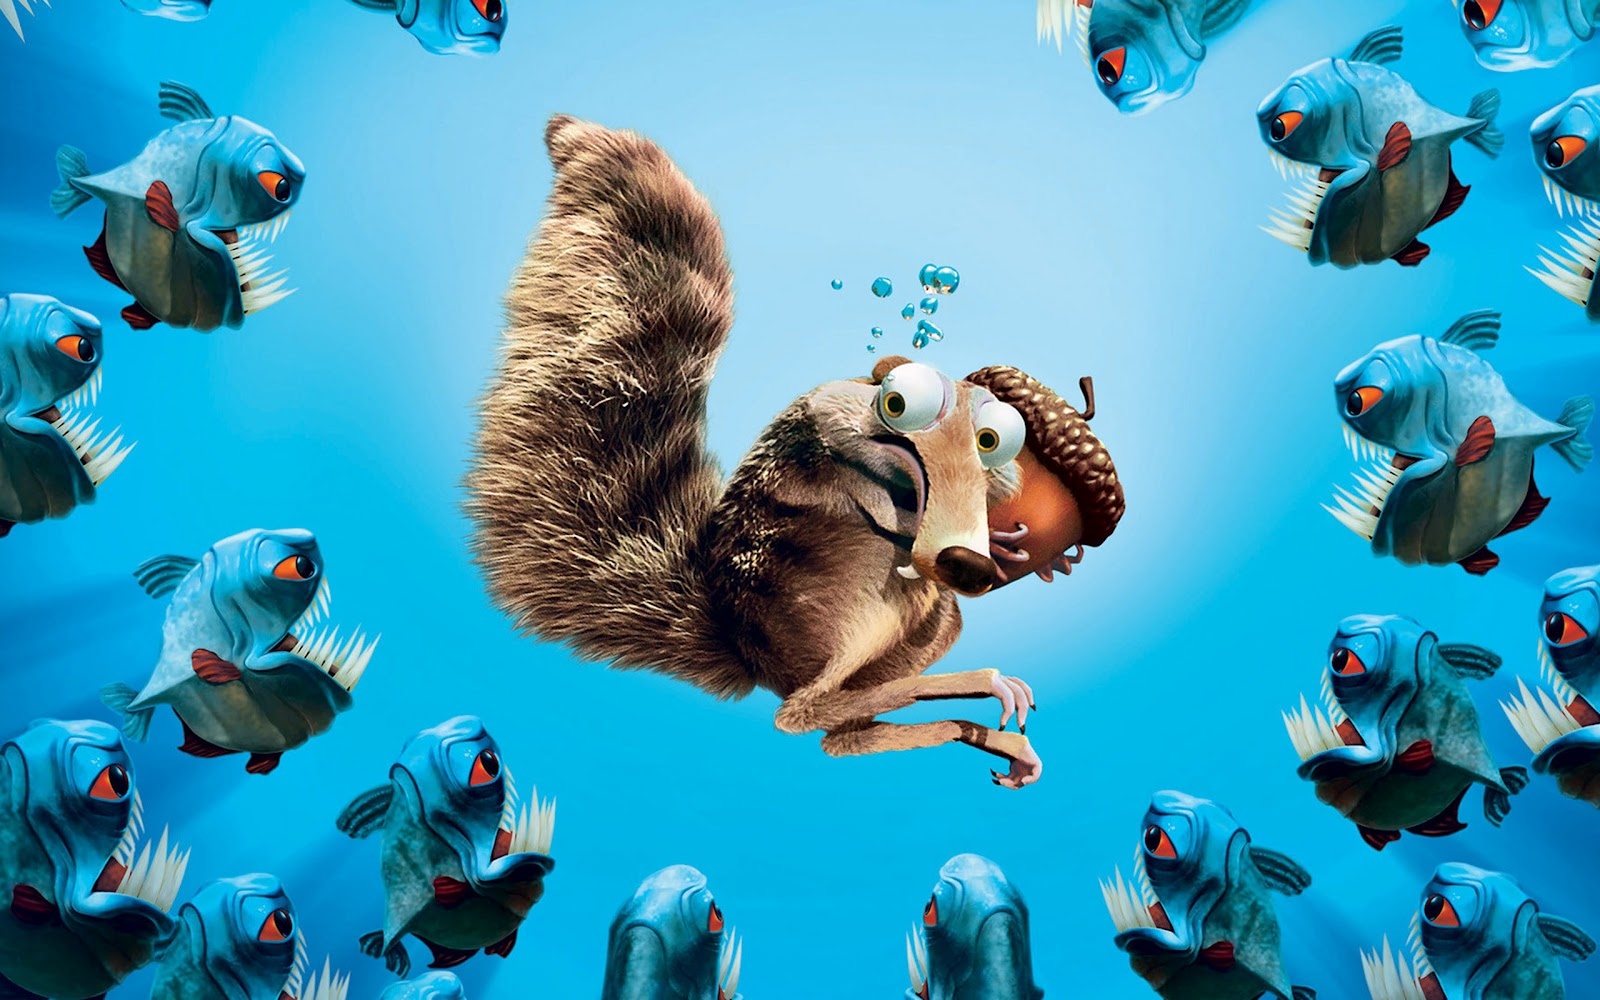 http://1.bp.blogspot.com/-pwRyUB0bVaA/UAzfmbw939I/AAAAAAAADHM/XwP9hyS5x6M/s1600/ice_age_4_continental_drift_2012-widescreen+wallpapers-supermoviepictures+(1).jpg